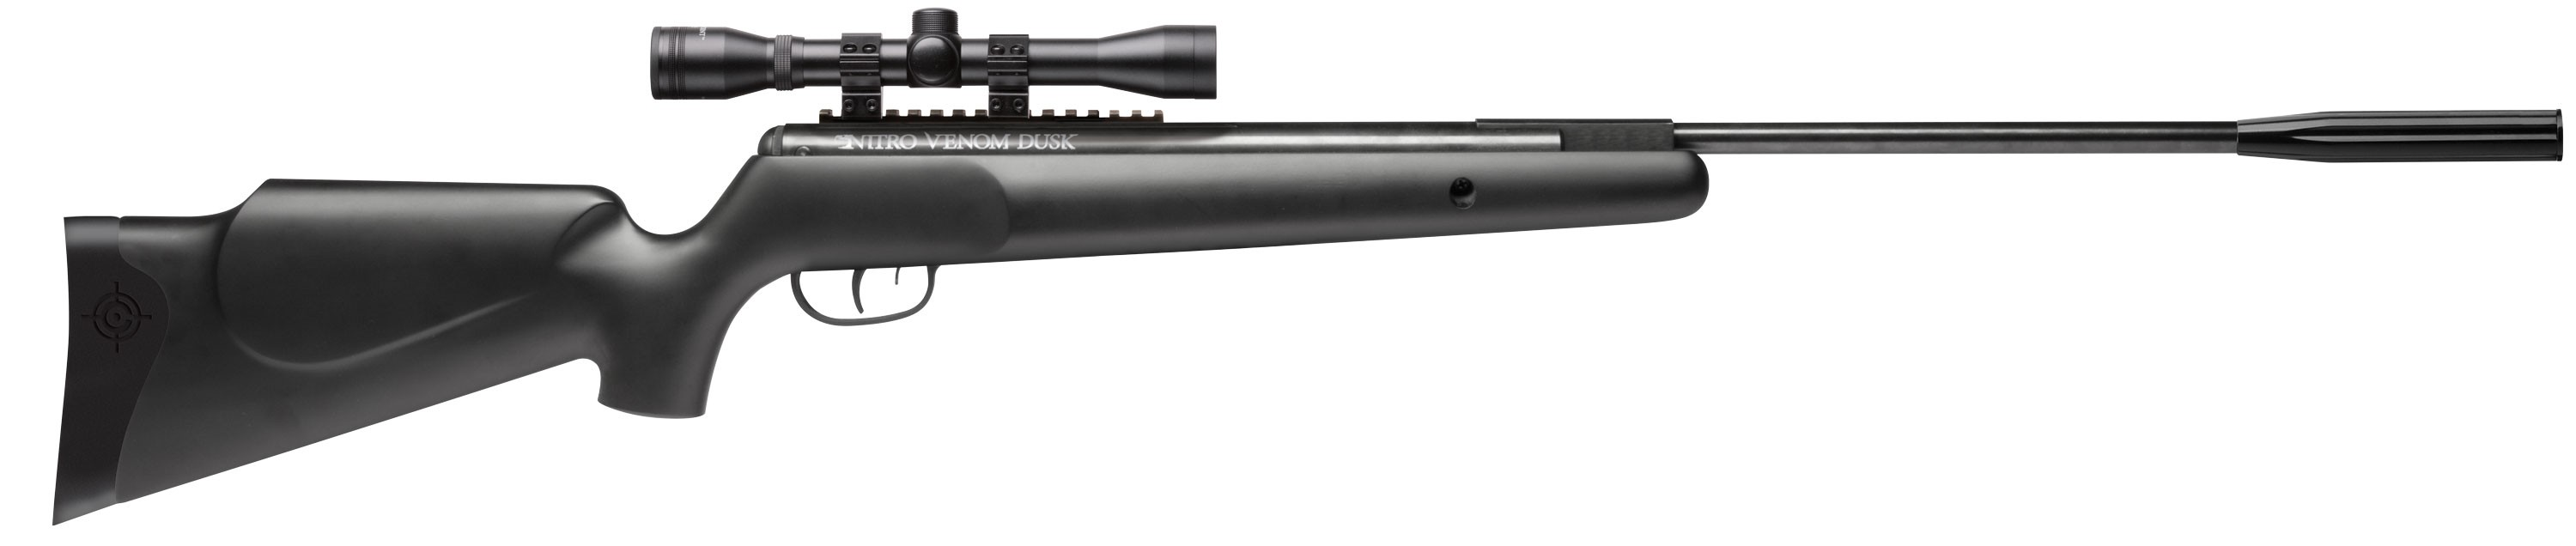 crosman nitro venom dusk break barrel .22 air rifle accuracy | crosman nitro venom dusk break barrel .22 air rifle power